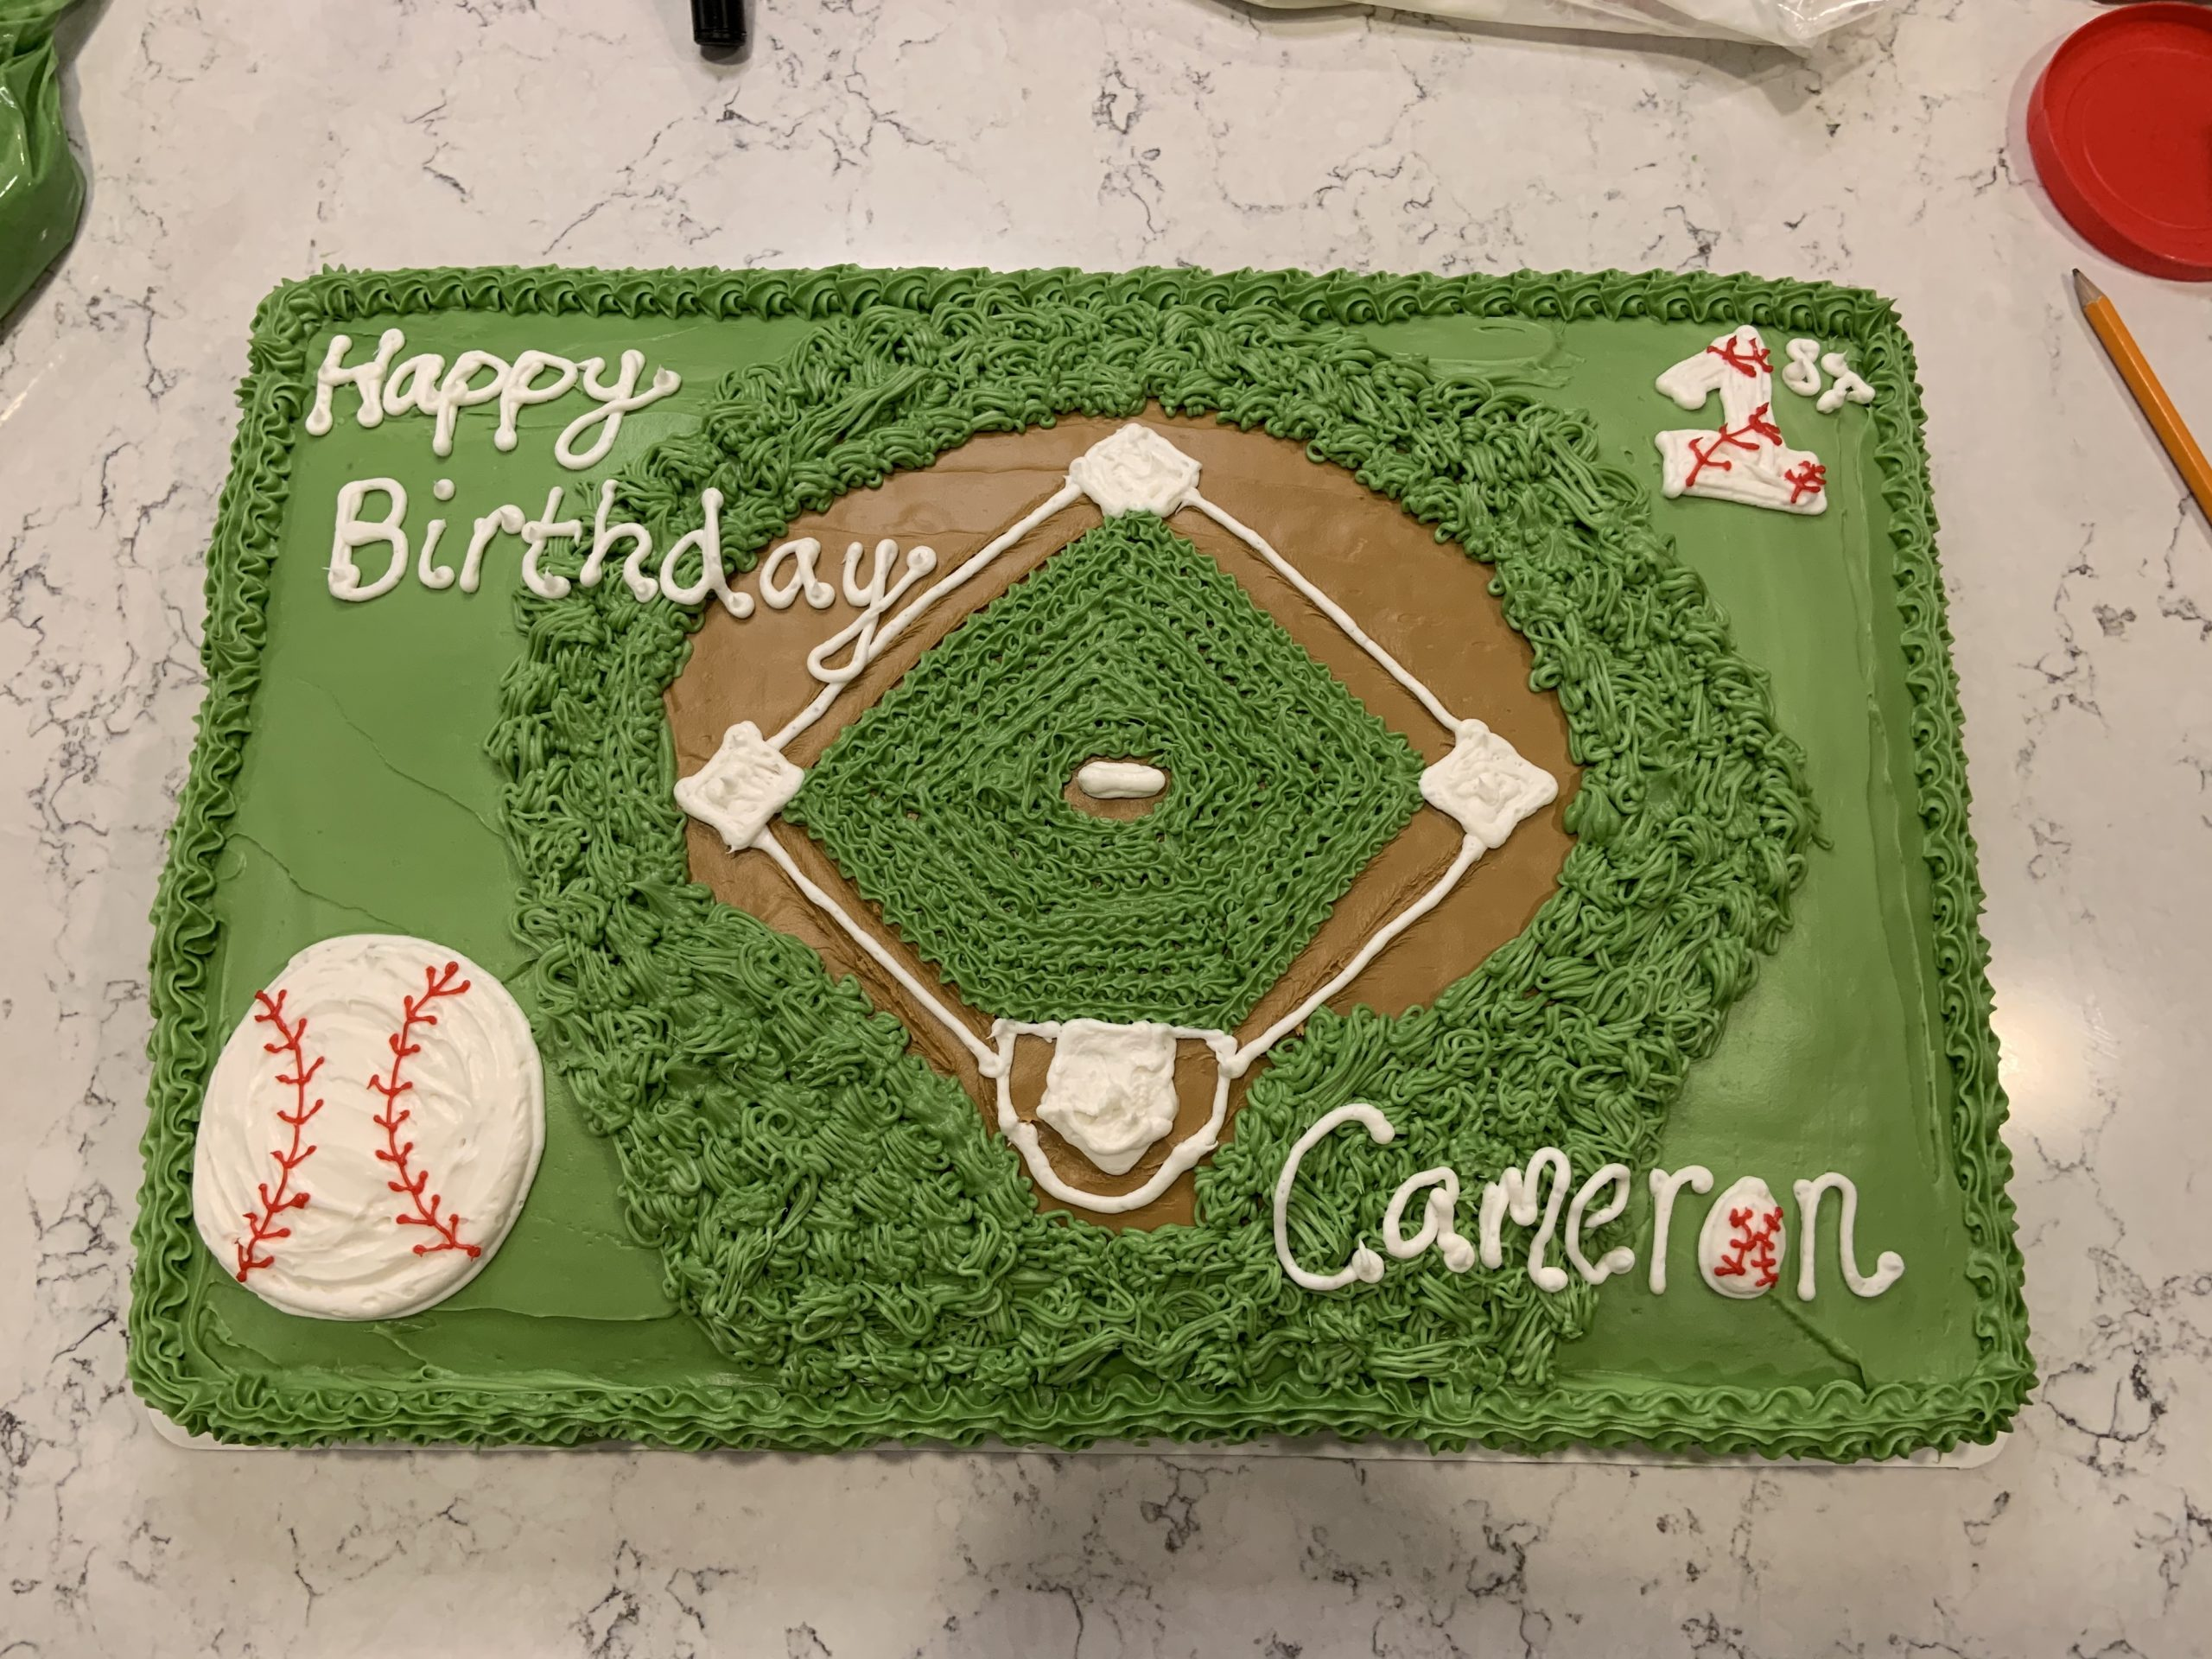 Stupendous Baseball Birthday Cake Fun And Frosted Funny Birthday Cards Online Fluifree Goldxyz